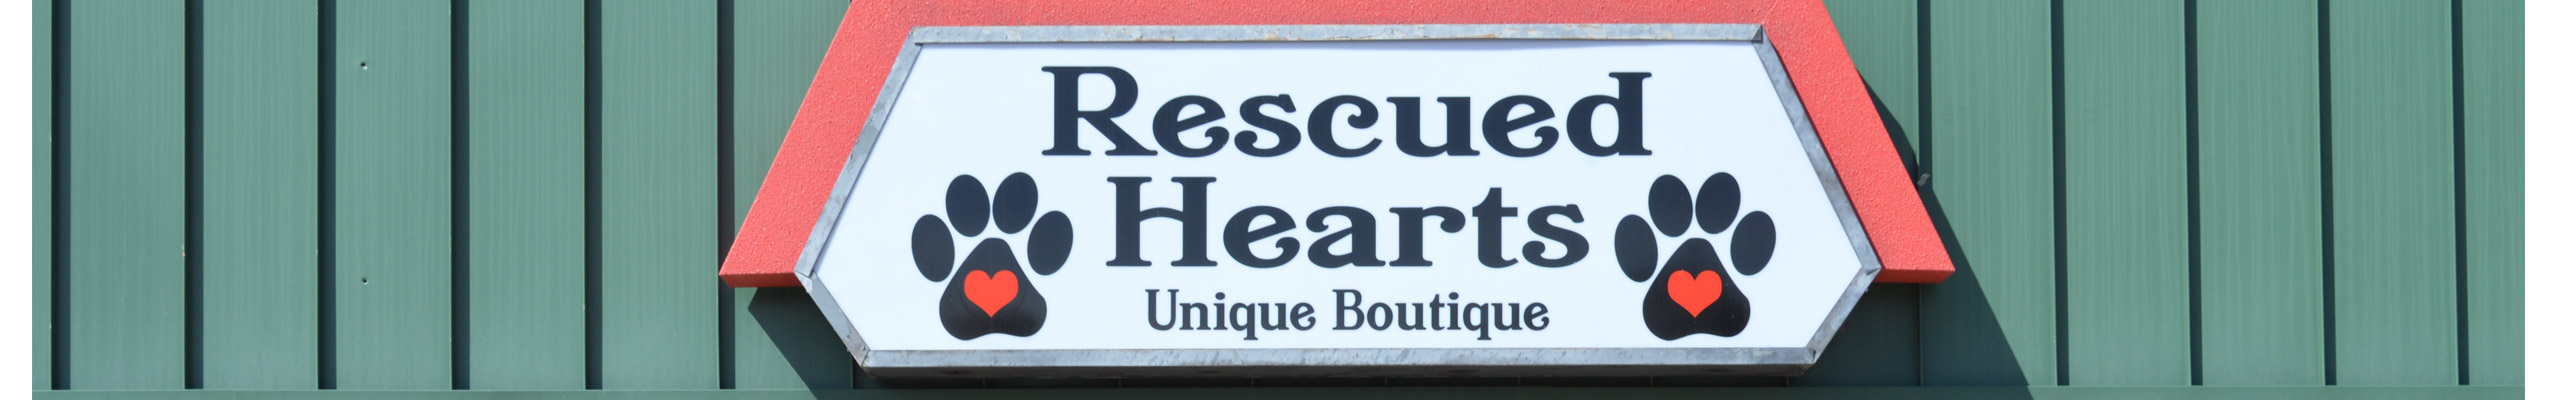 RescuedHearts-Slide-81